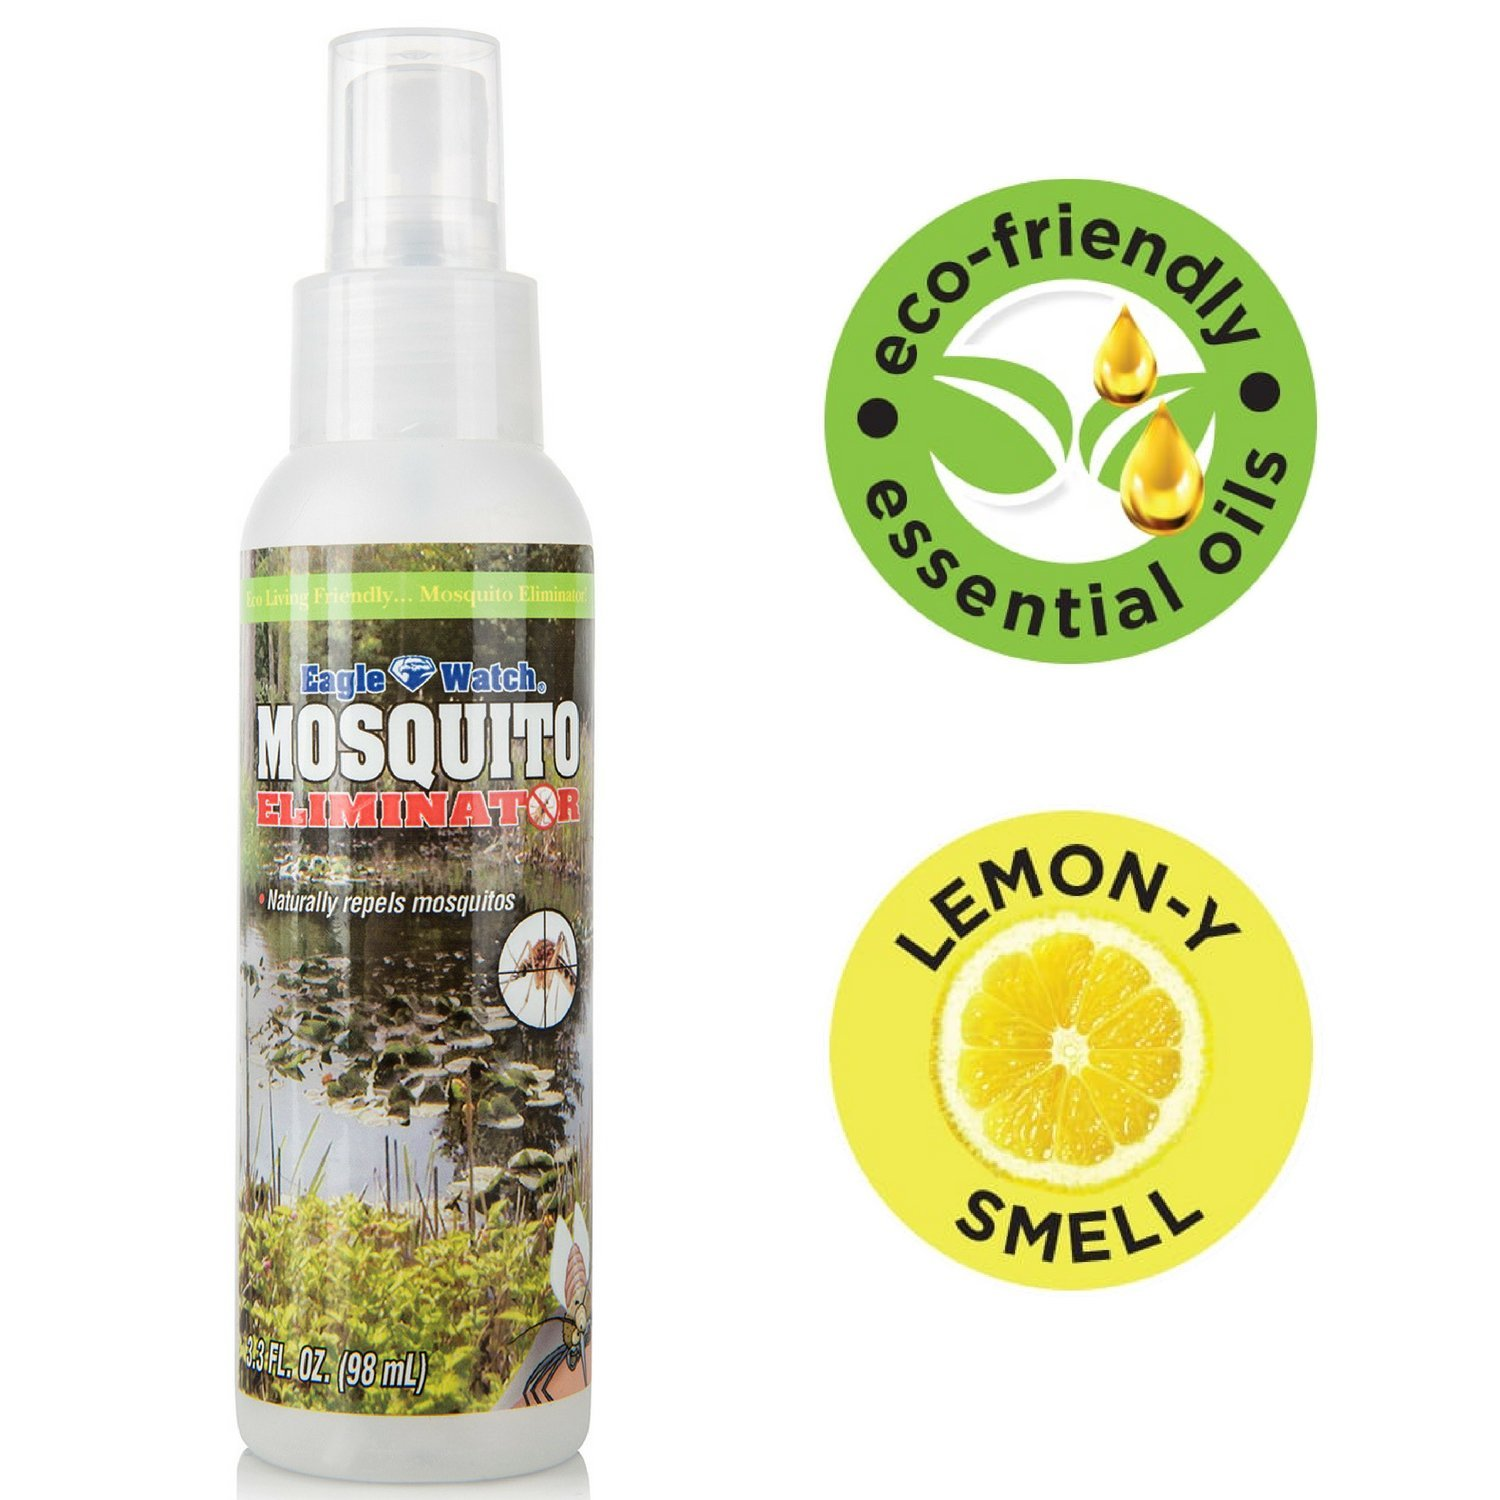 lemon grass as mosquito repellent Recipe one - natural mosquito repellent spray the ingredients and materials you will need for this particular insect repellent are: 1 12oz bottle of witch hazel (one without alcohol or parabens is your best bet for a completely natural repellent.